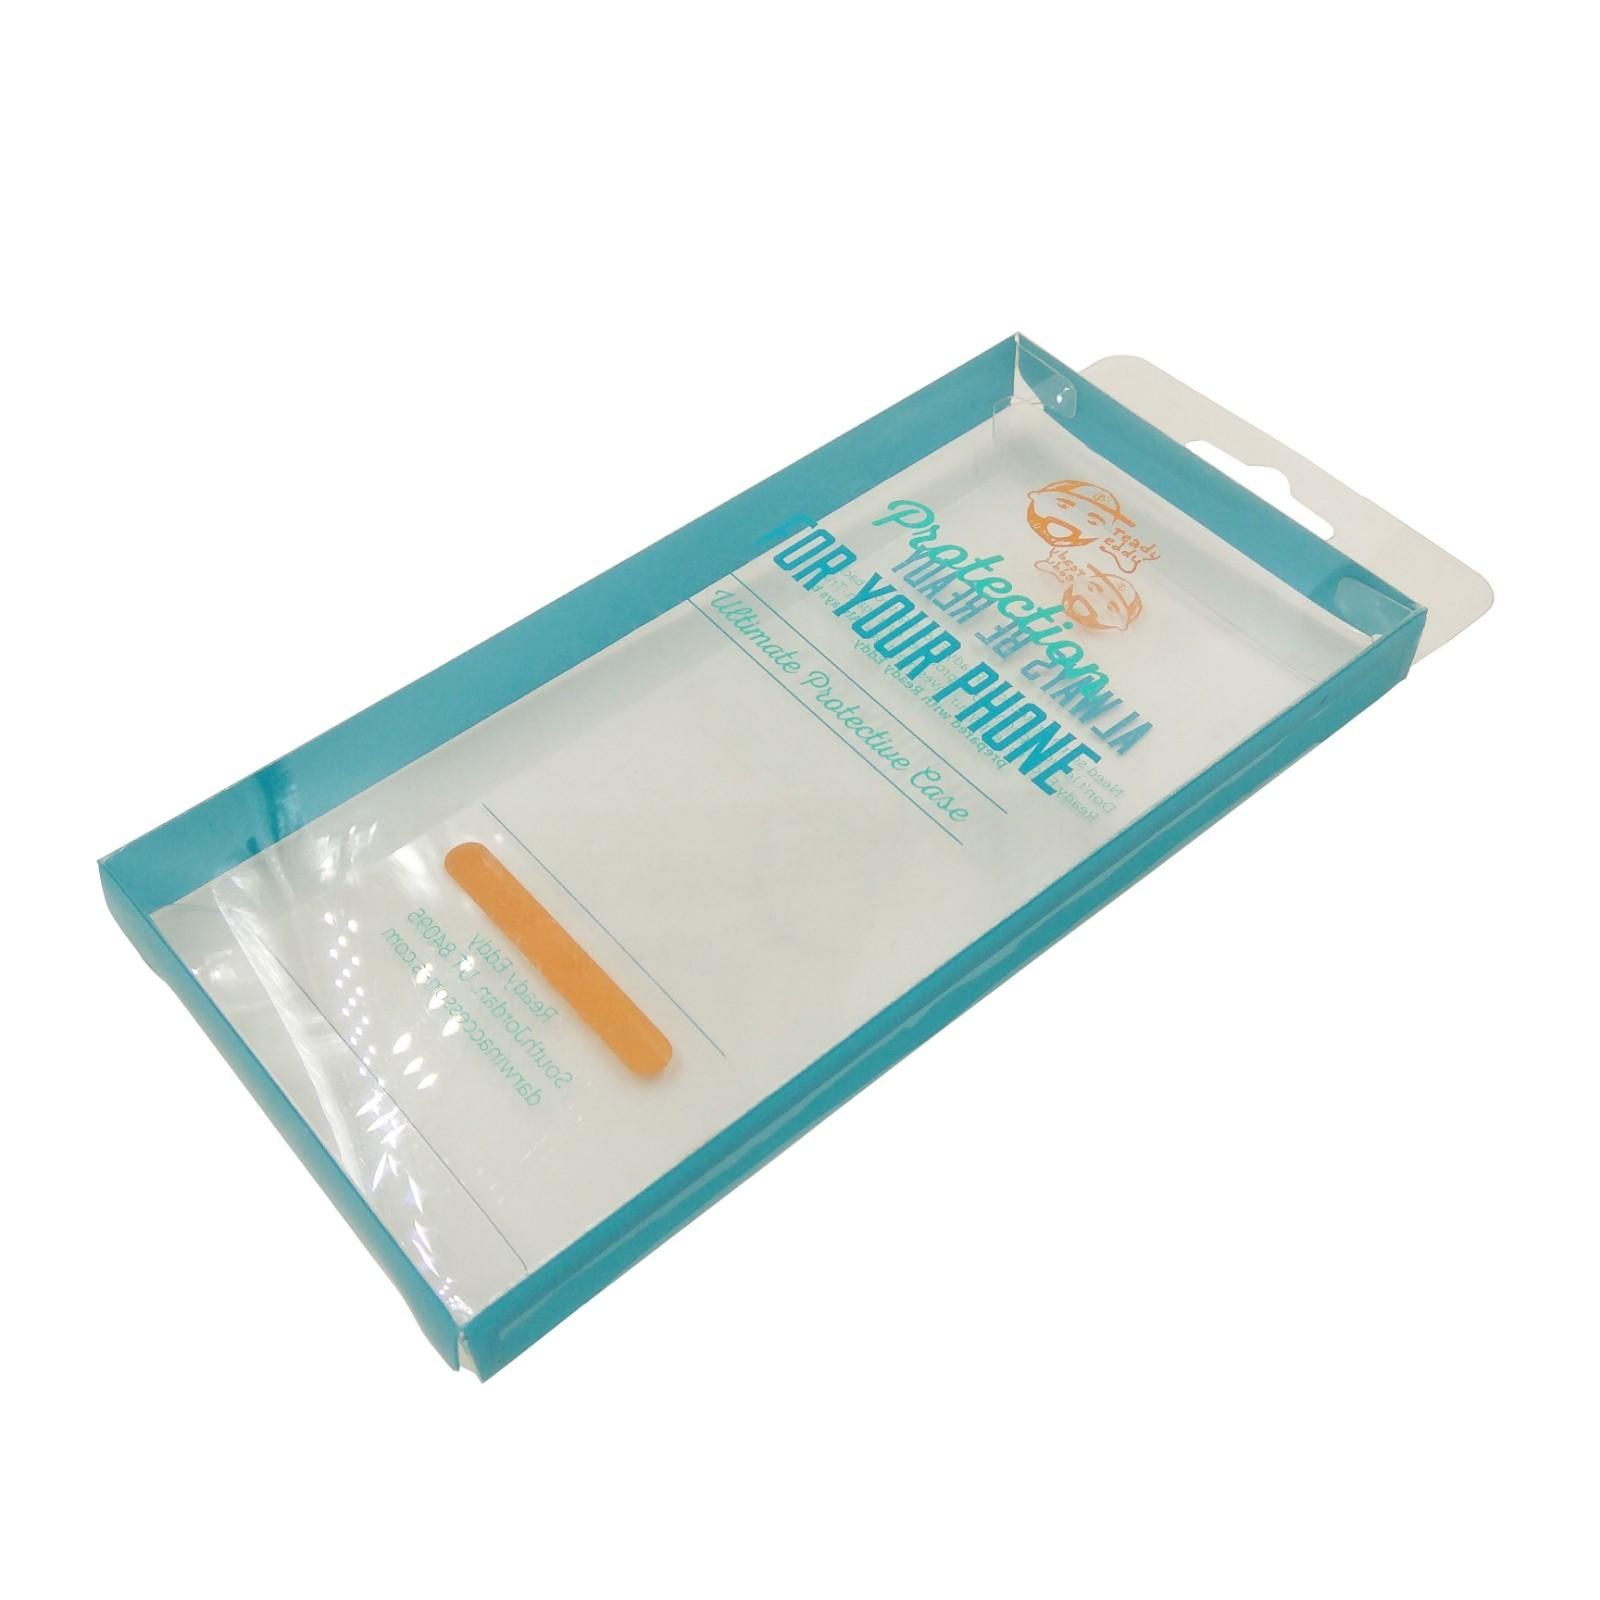 Yijianxing Plastic Products pvc plastic box packaging widely-use for decor